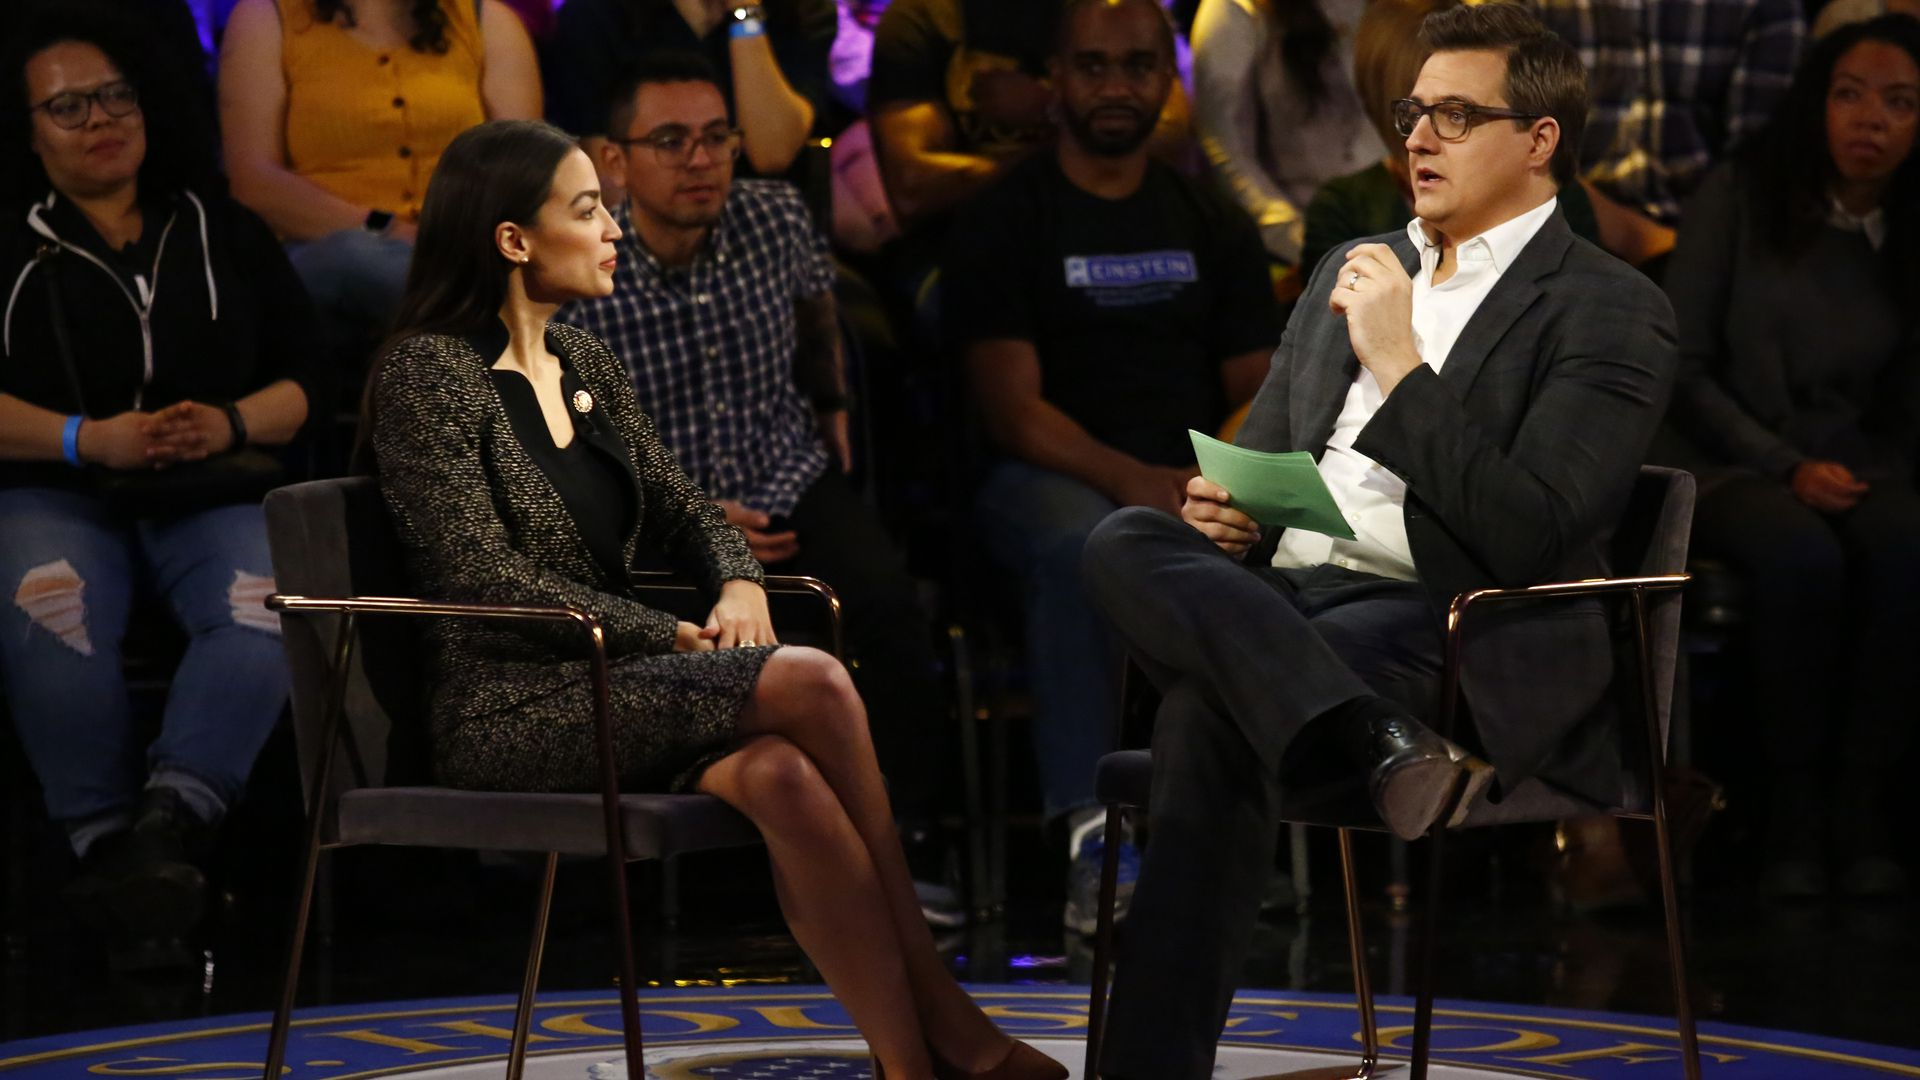 In this image, AOC and Chris Hayes sit across from each other on a raised circle platform at the townhall.